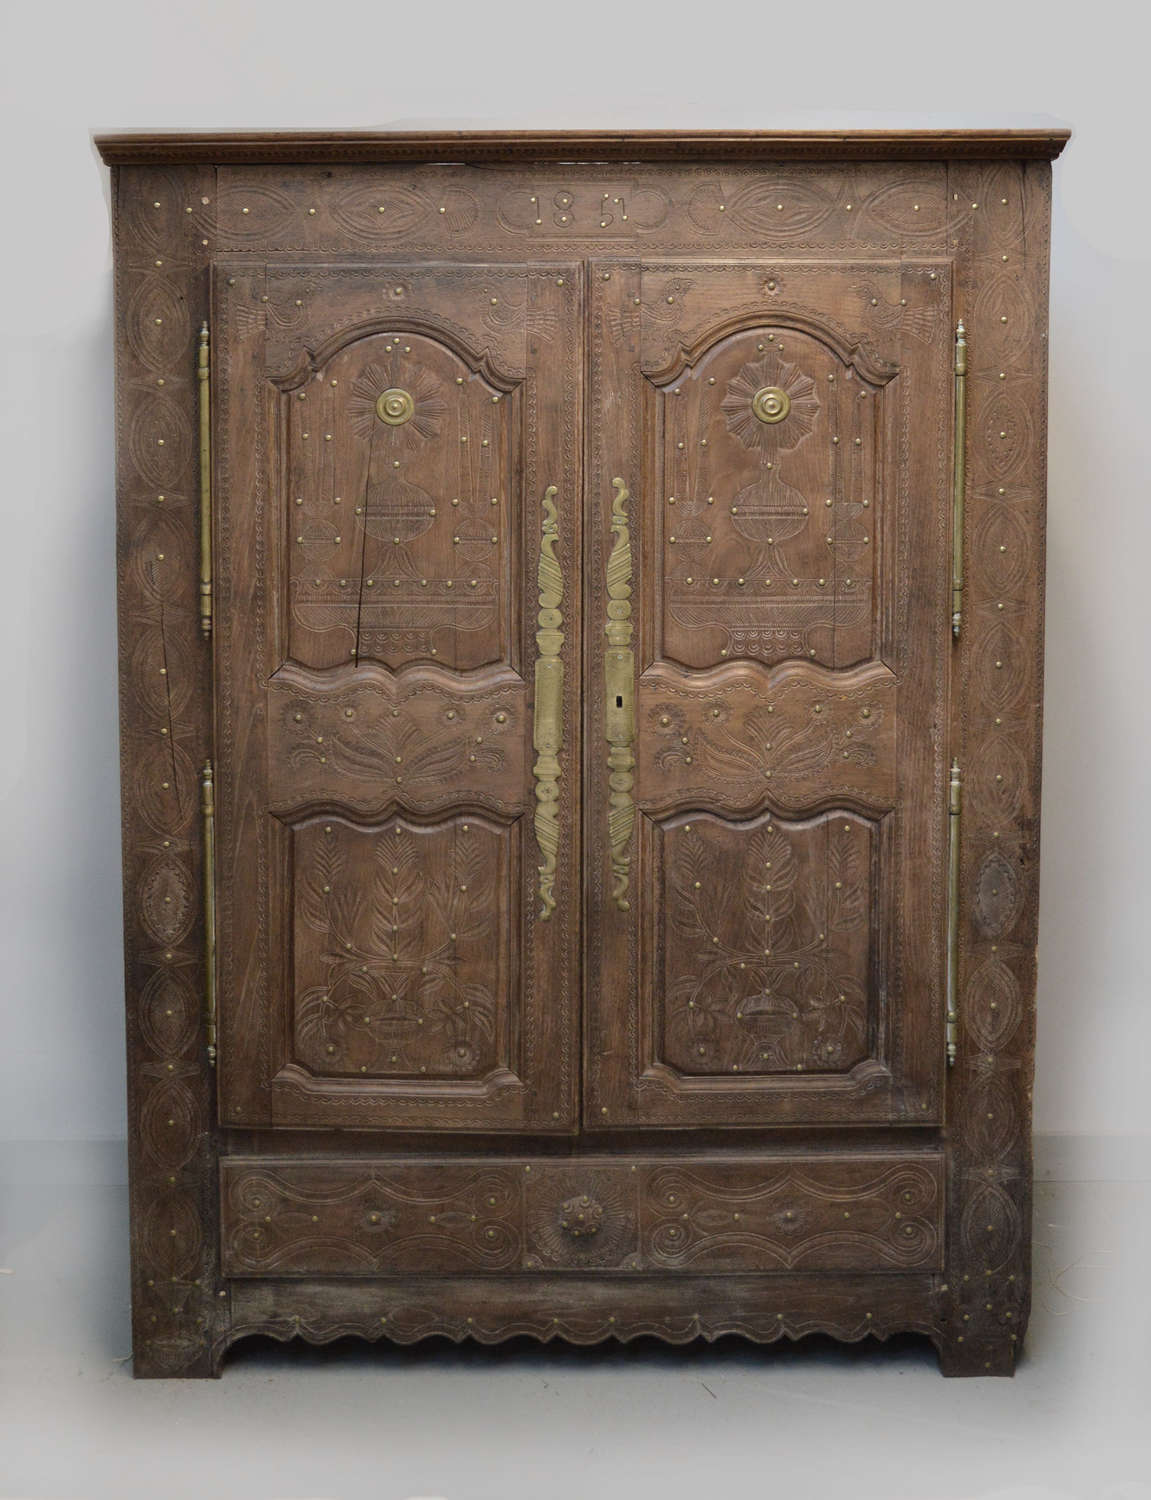 Mid 19th Century Breton Marriage Armoire